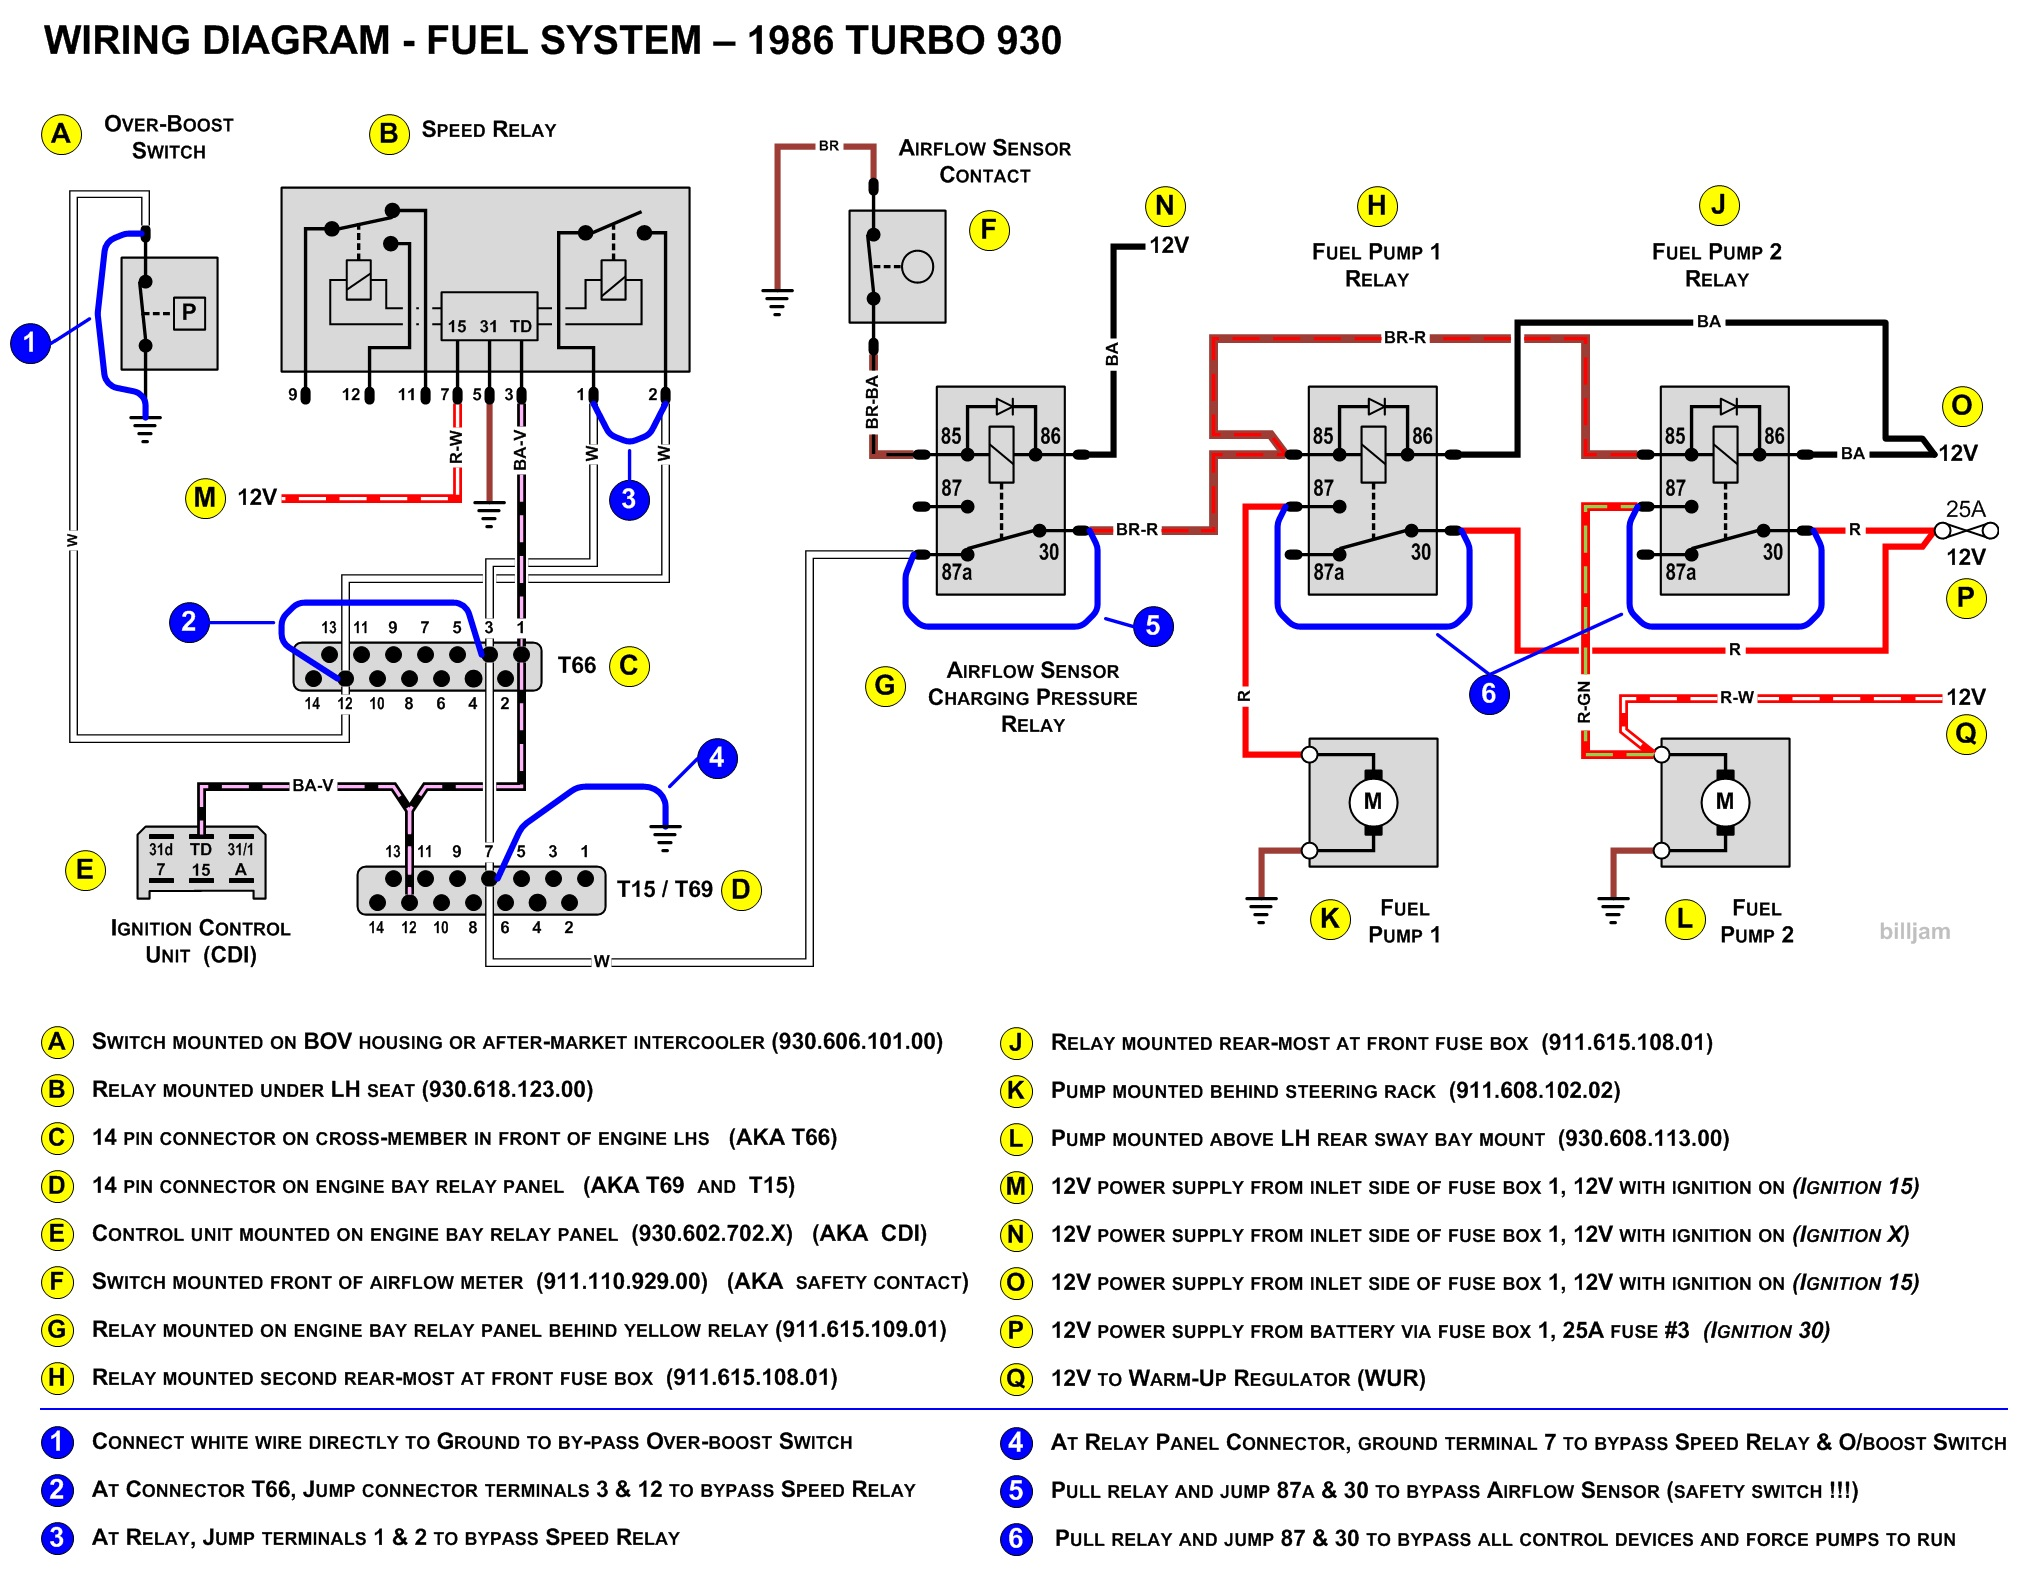 86 porsche 930 fuel system wiring diagram jumpers made a fuse box label for my 88 page 3 pelican parts technical bbs fuse box label at metegol.co